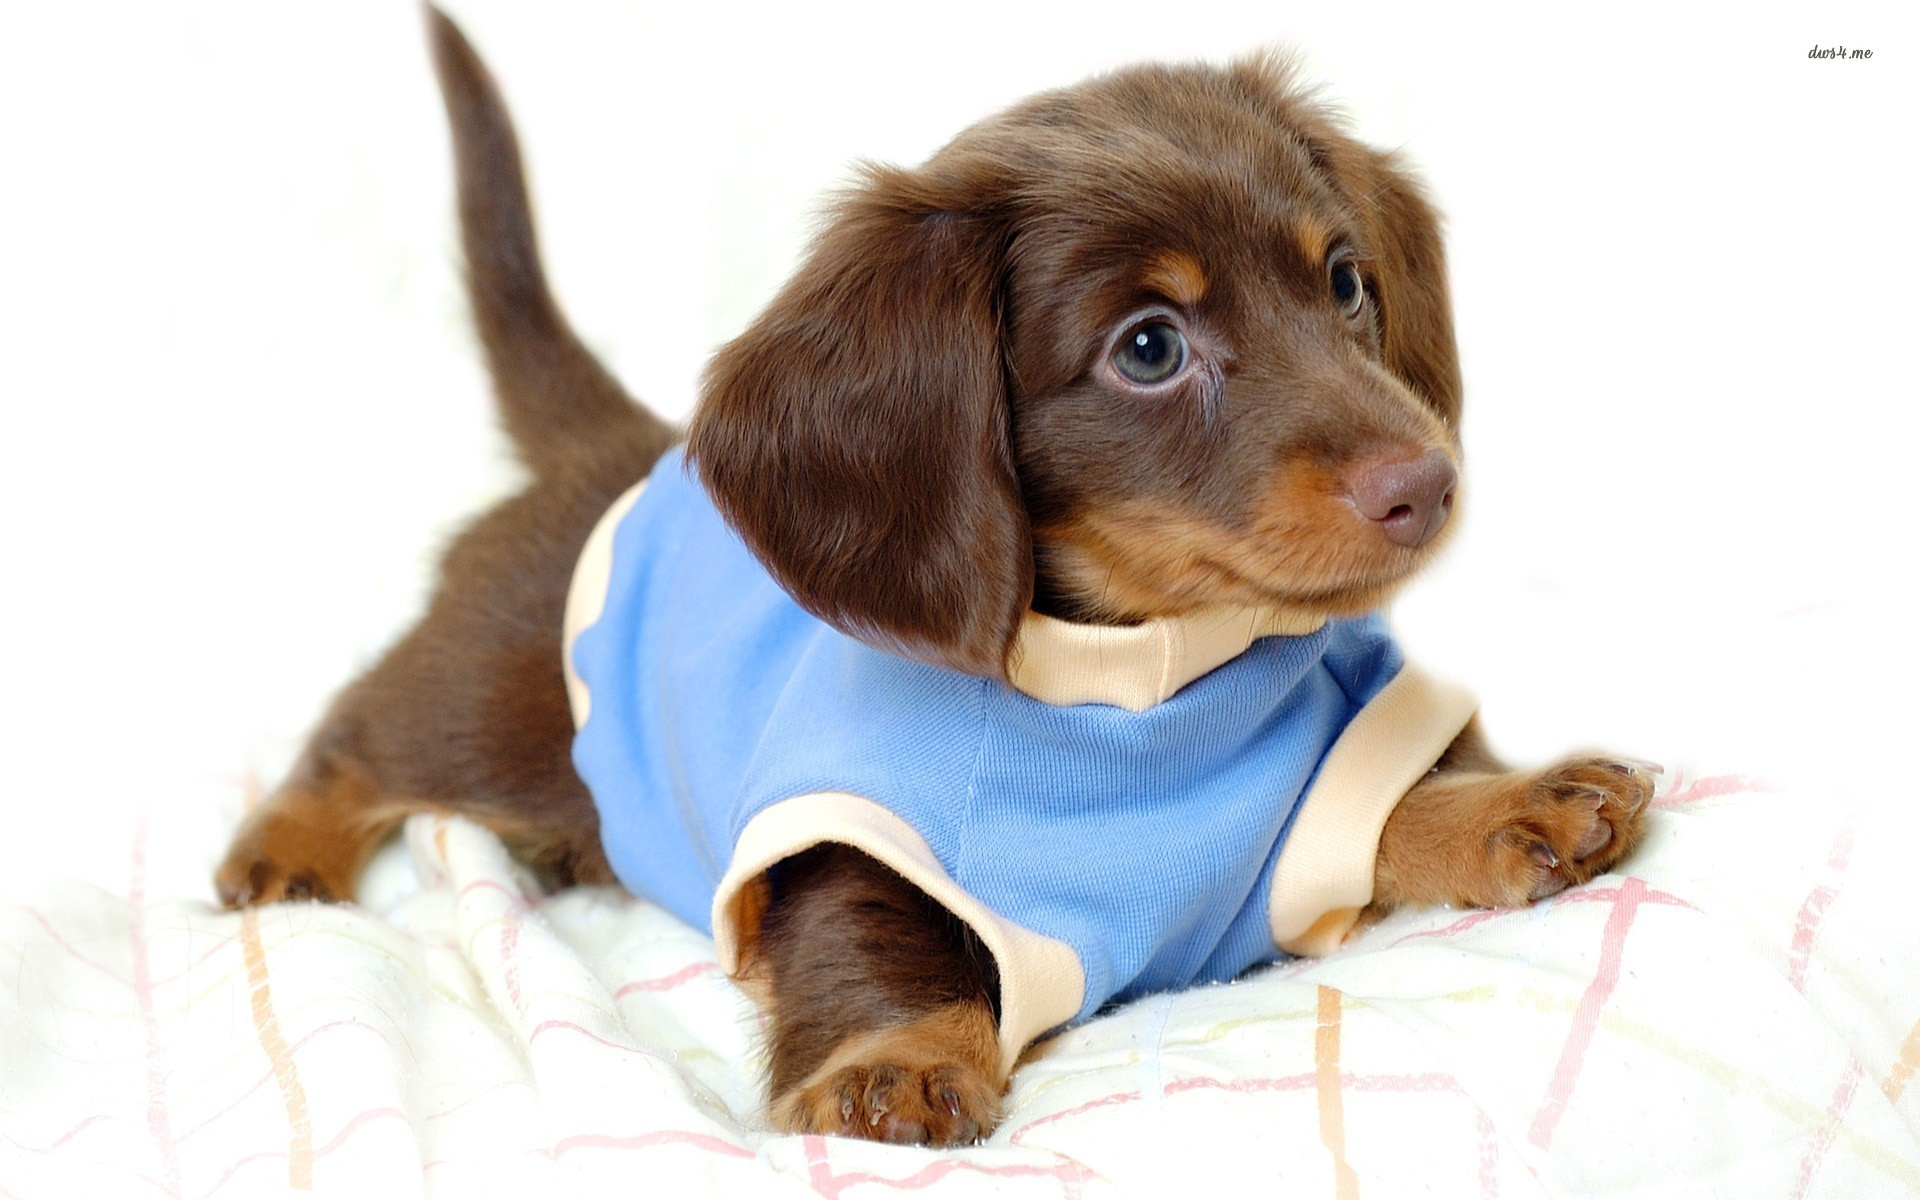 1920x1200 Dachshund puppy in a sweater Animal HD desktop wallpaper, Dog wallpaper,  Puppy wallpaper, Dachshund wallpaper - Animals no.